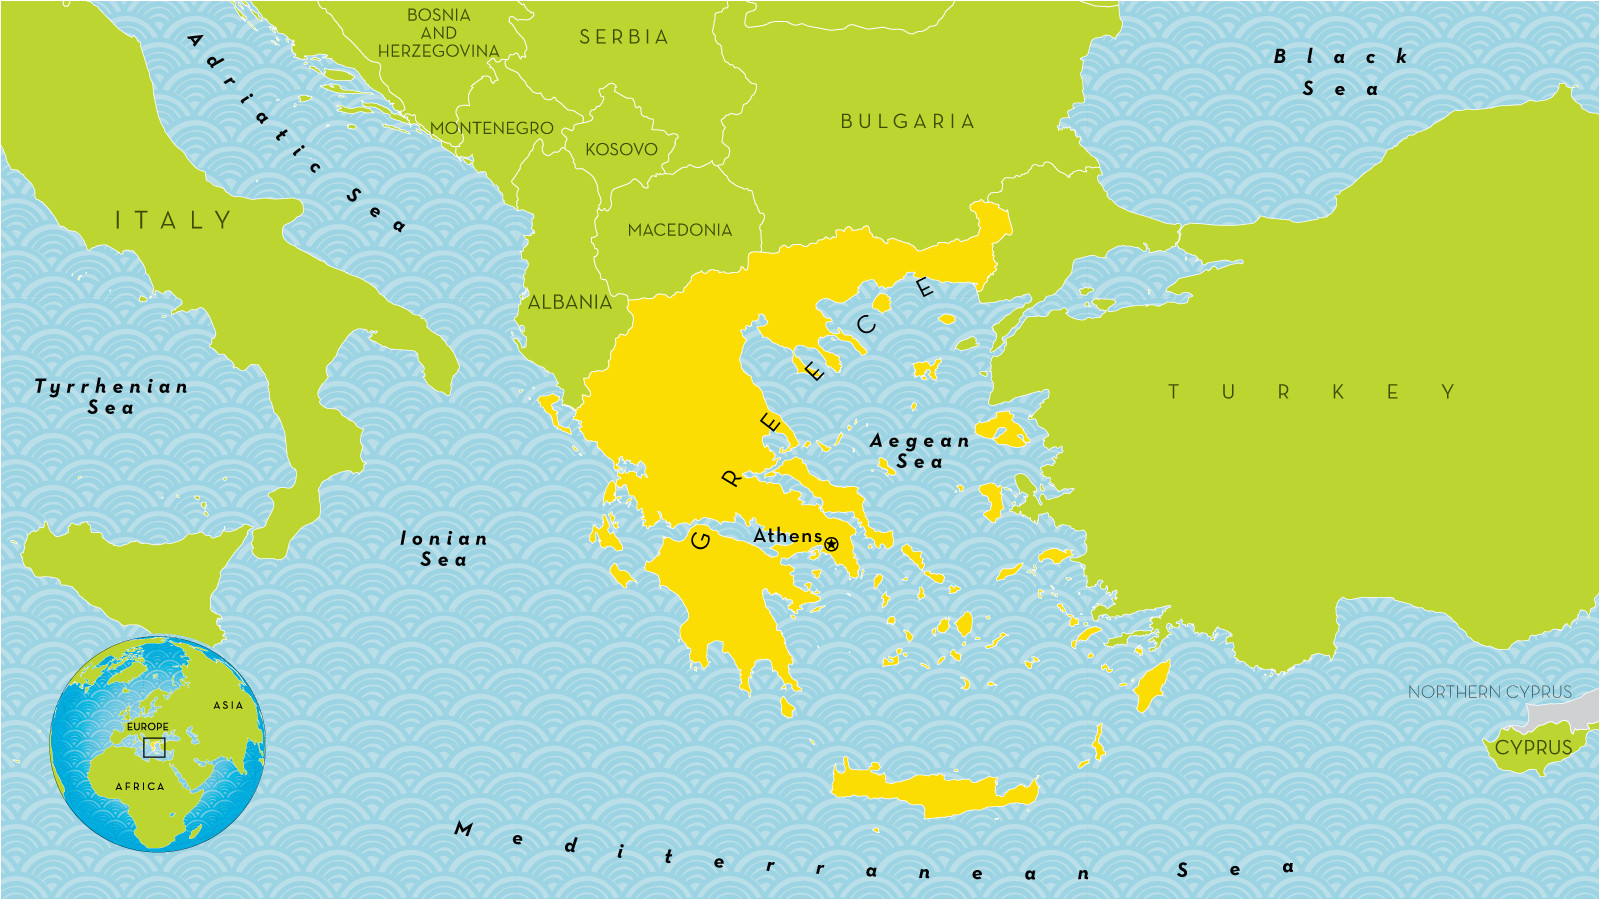 69 comprehensible map of greece in world map